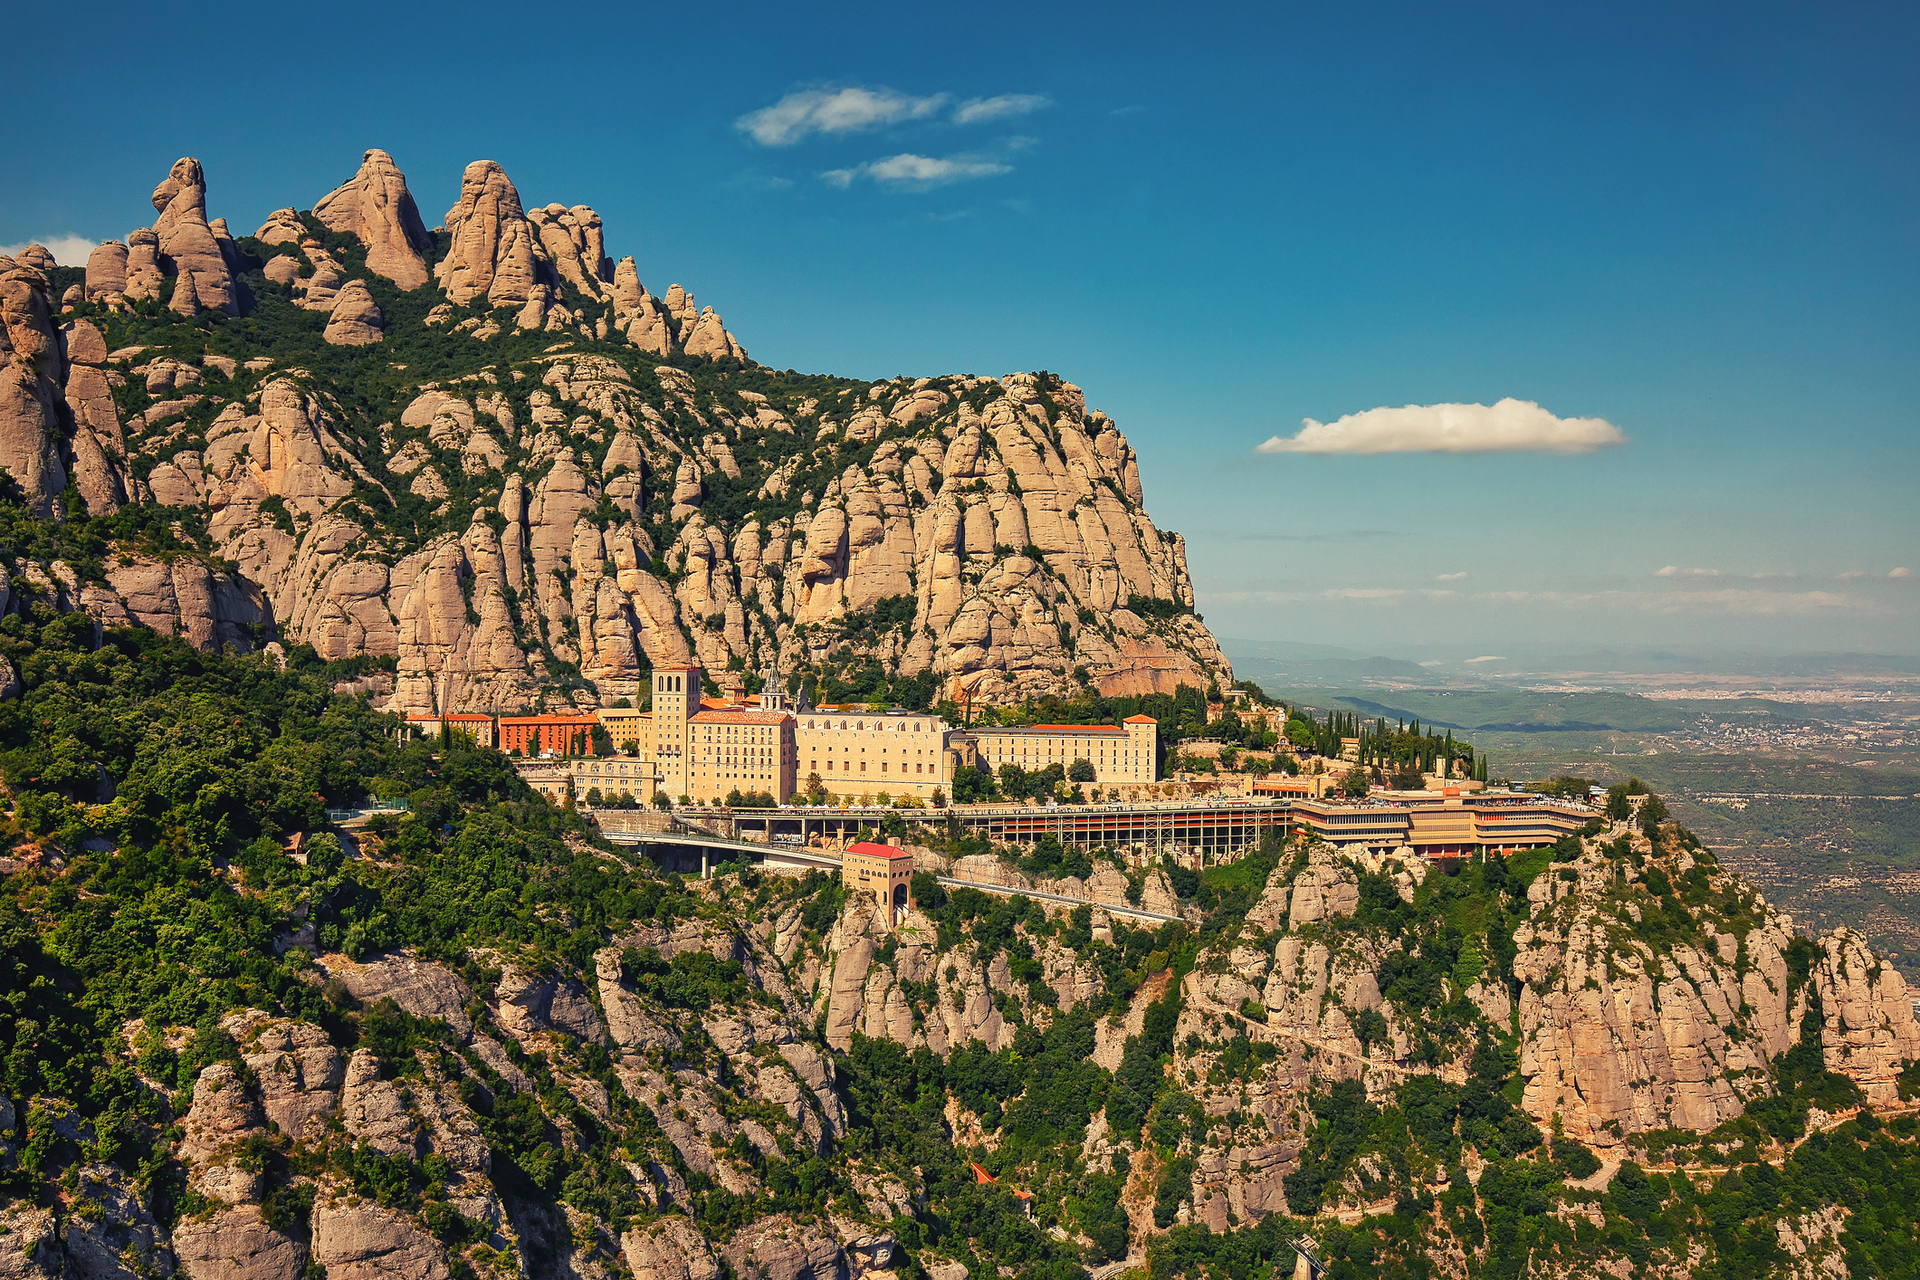 Spain: When in Barcelona, make a beeline for Montserrat